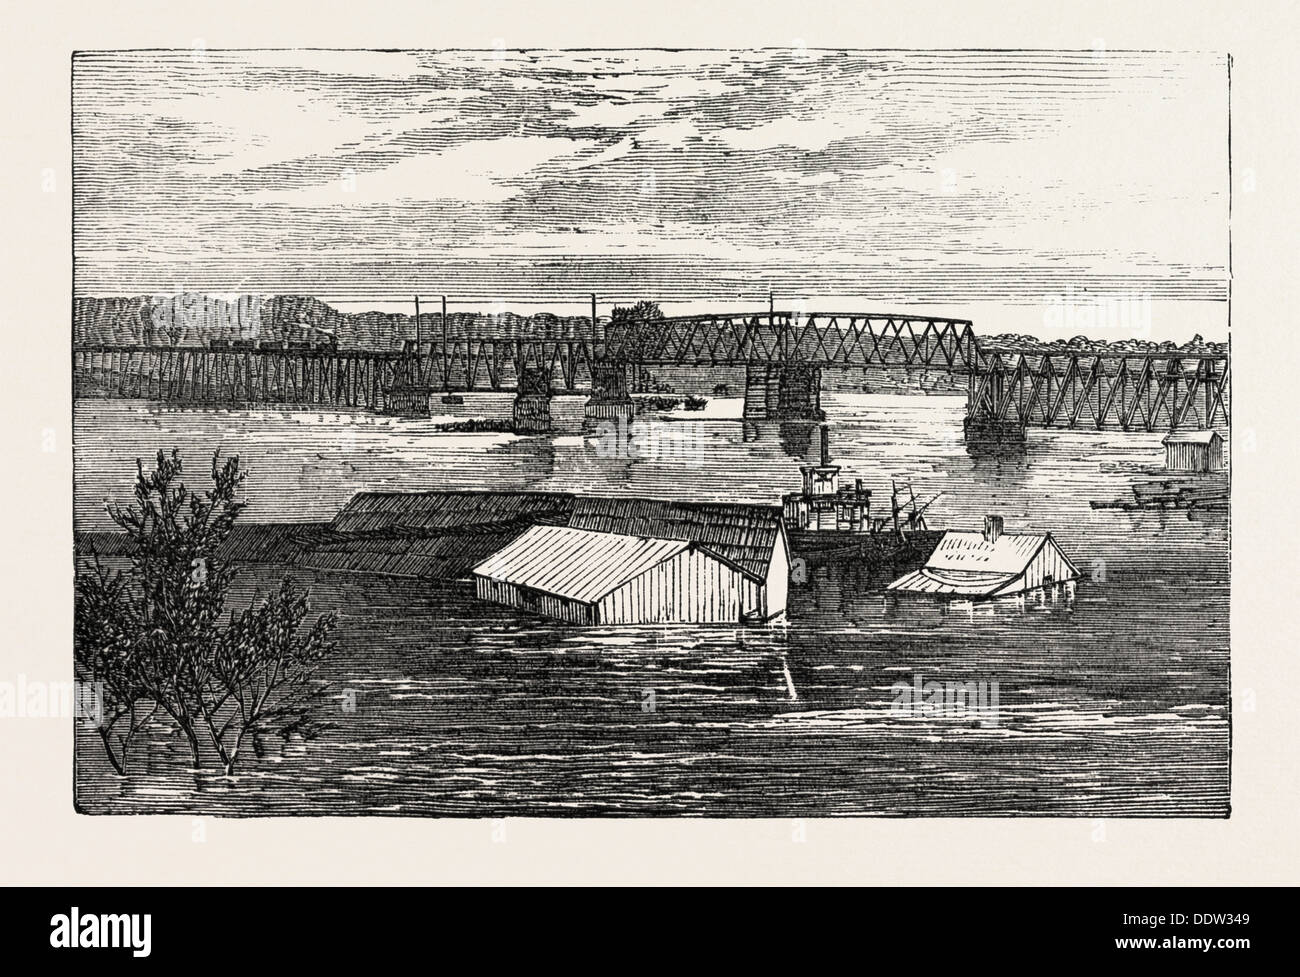 Inundations in the united states of america railroad bridge stock inundations in the united states of america railroad bridge clarksville tennessee sciox Image collections